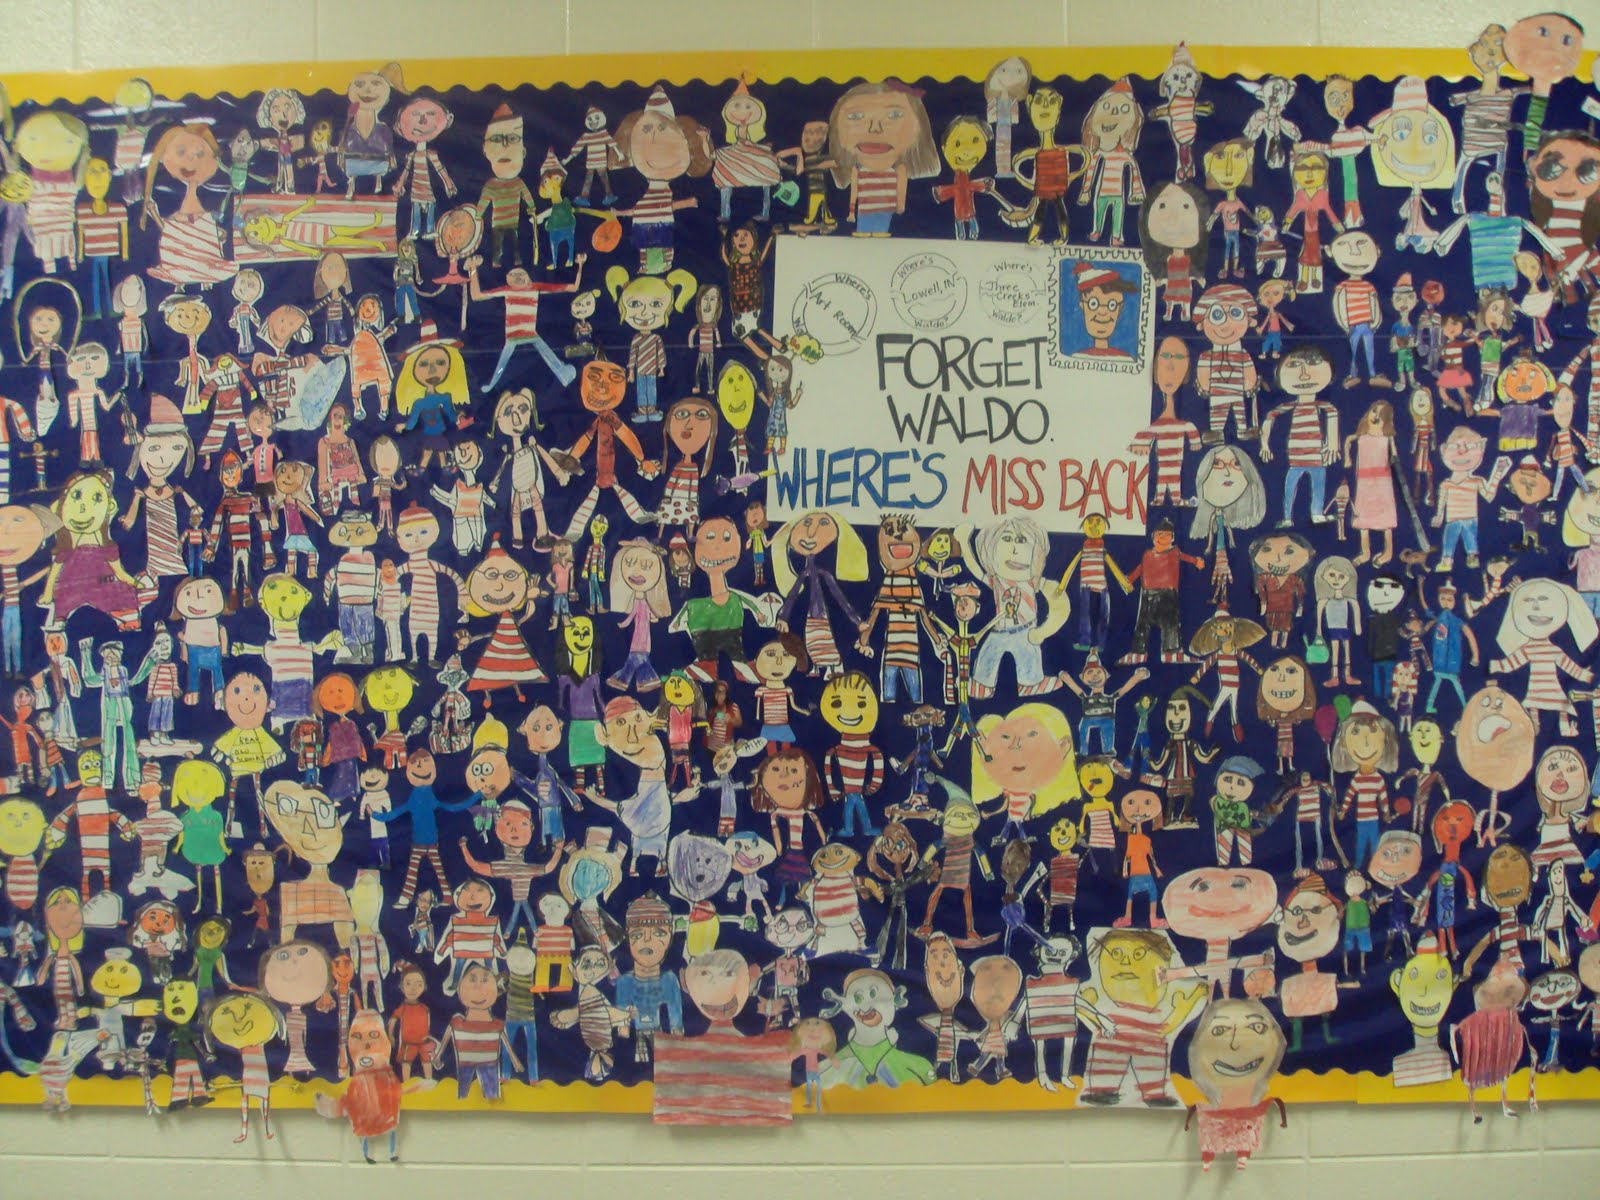 Bulletin Boards To Remember Back To School A Different Take On Waldo